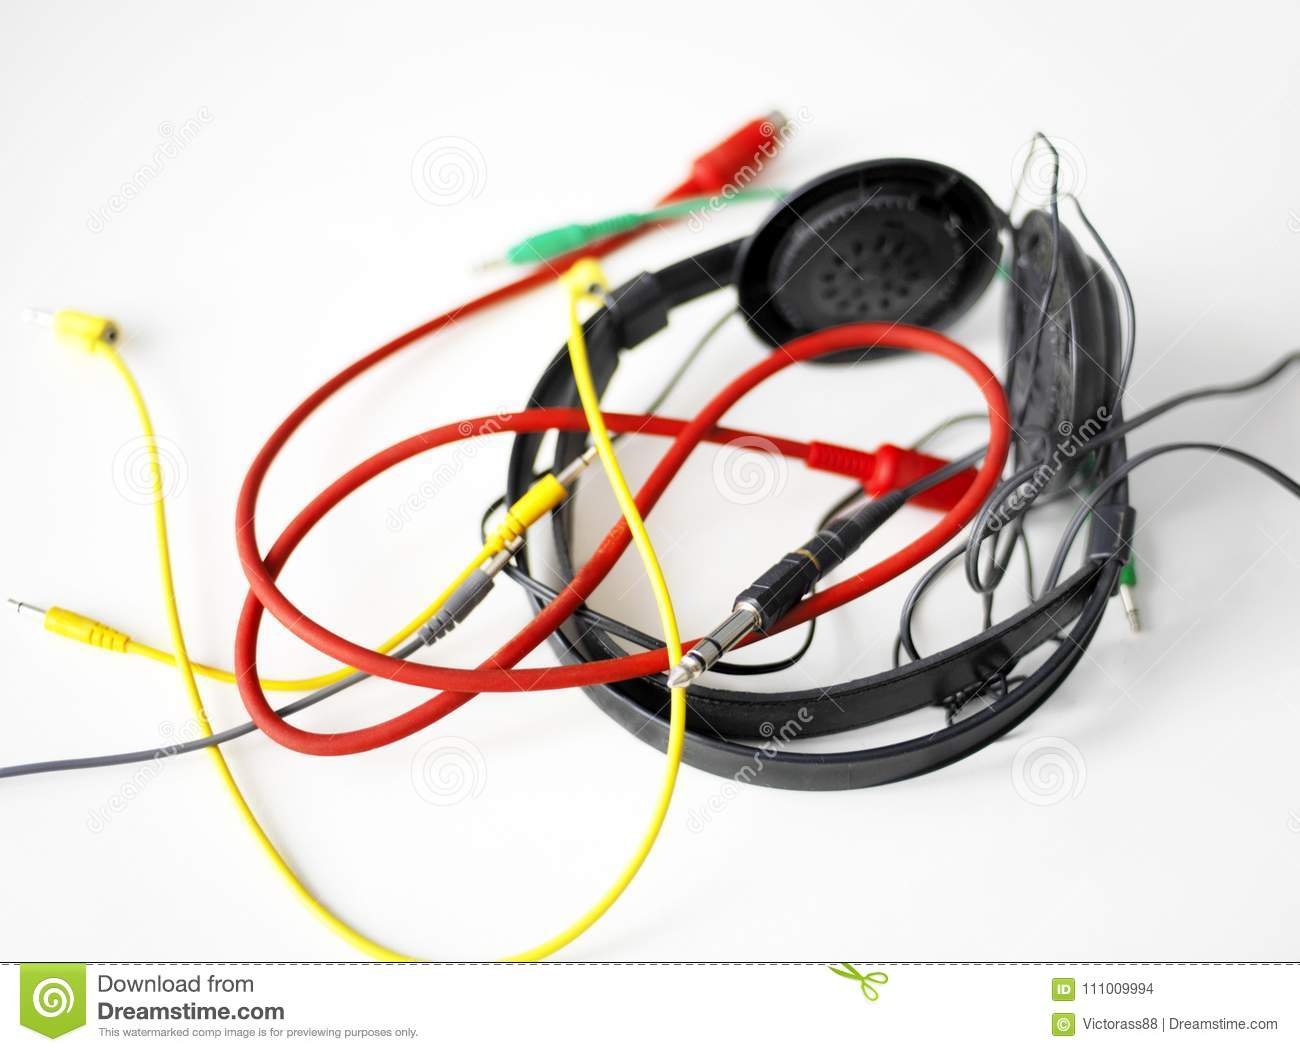 Tangled Audio Cables Stock Photo Image Of Messy Gray 111009994 Cable Wiring